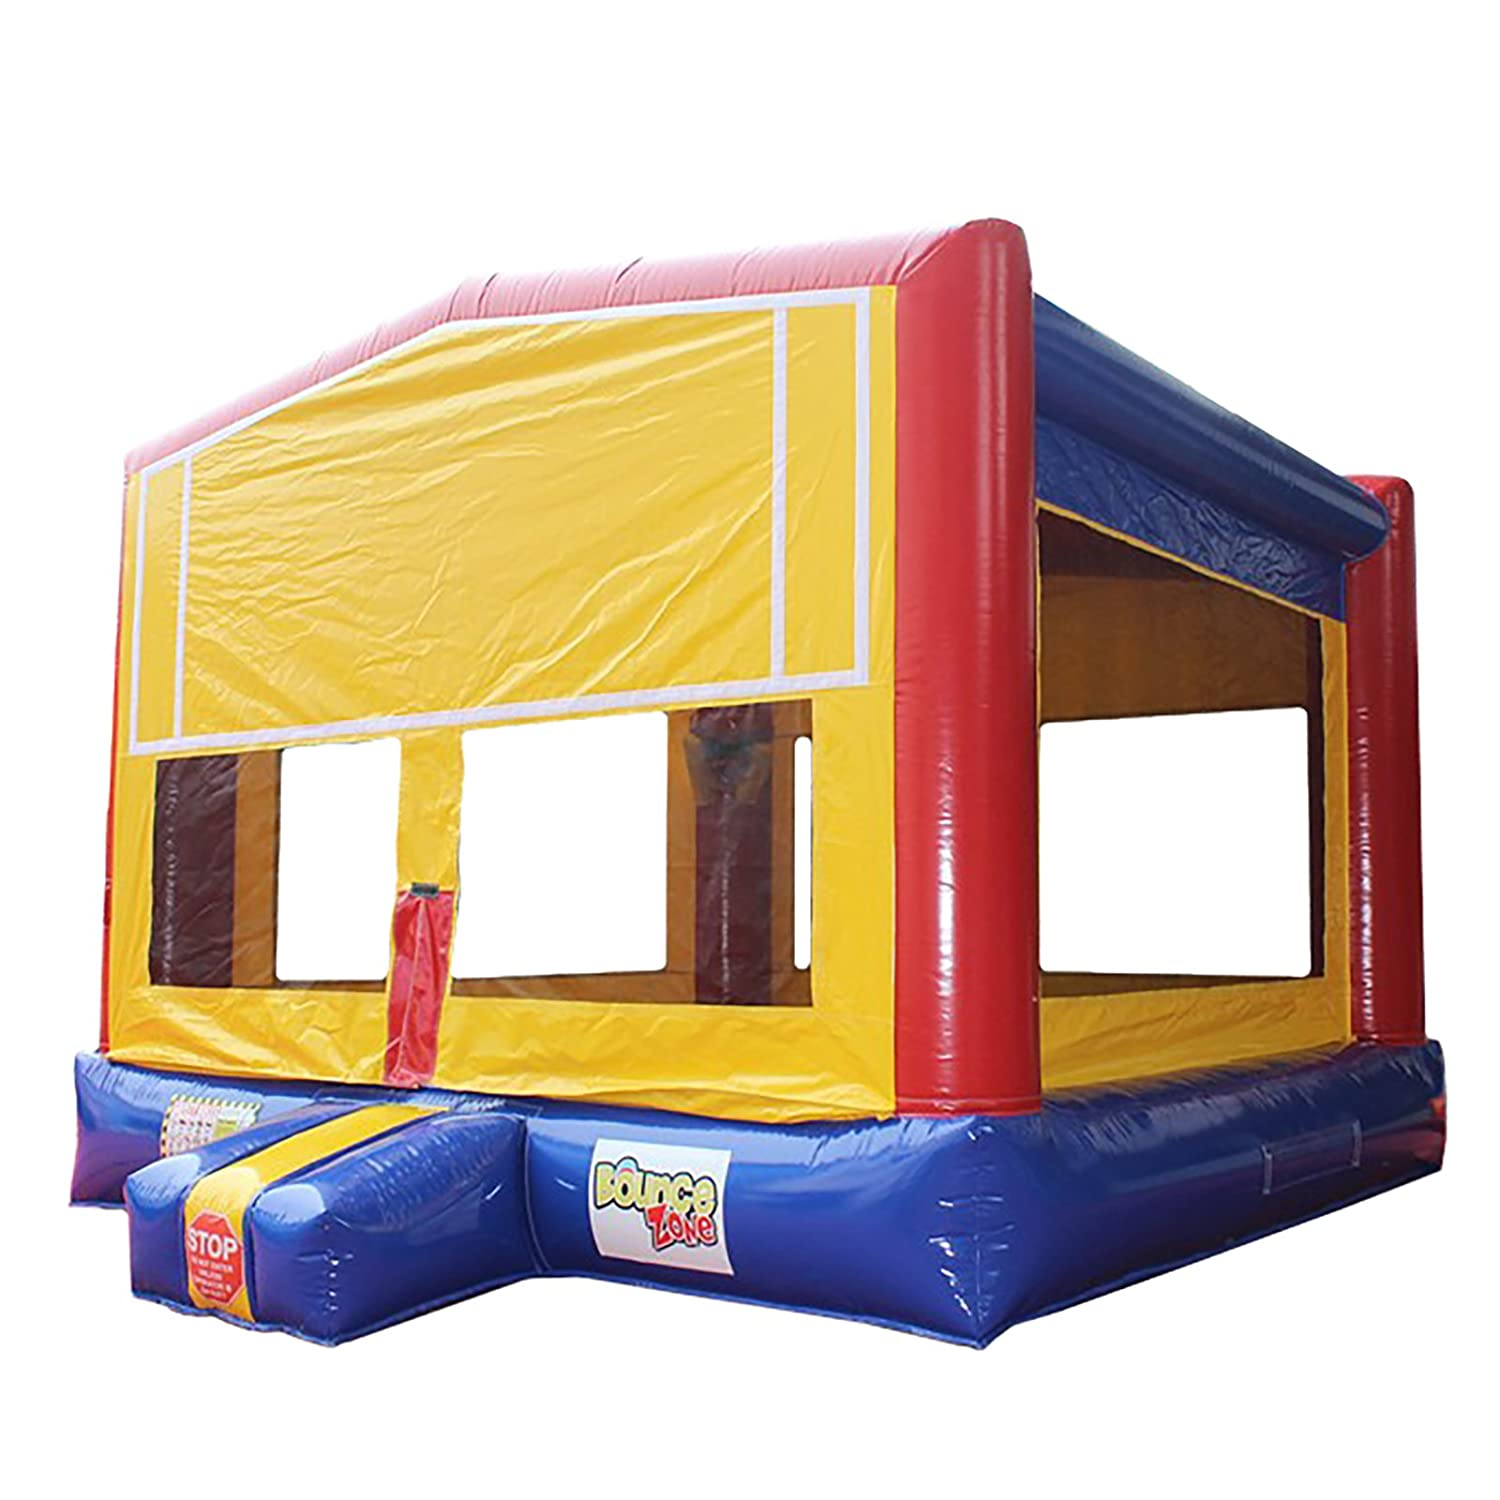 Inflatable Commercial Grade Bounce House 15ft 100/% PVC with Blower